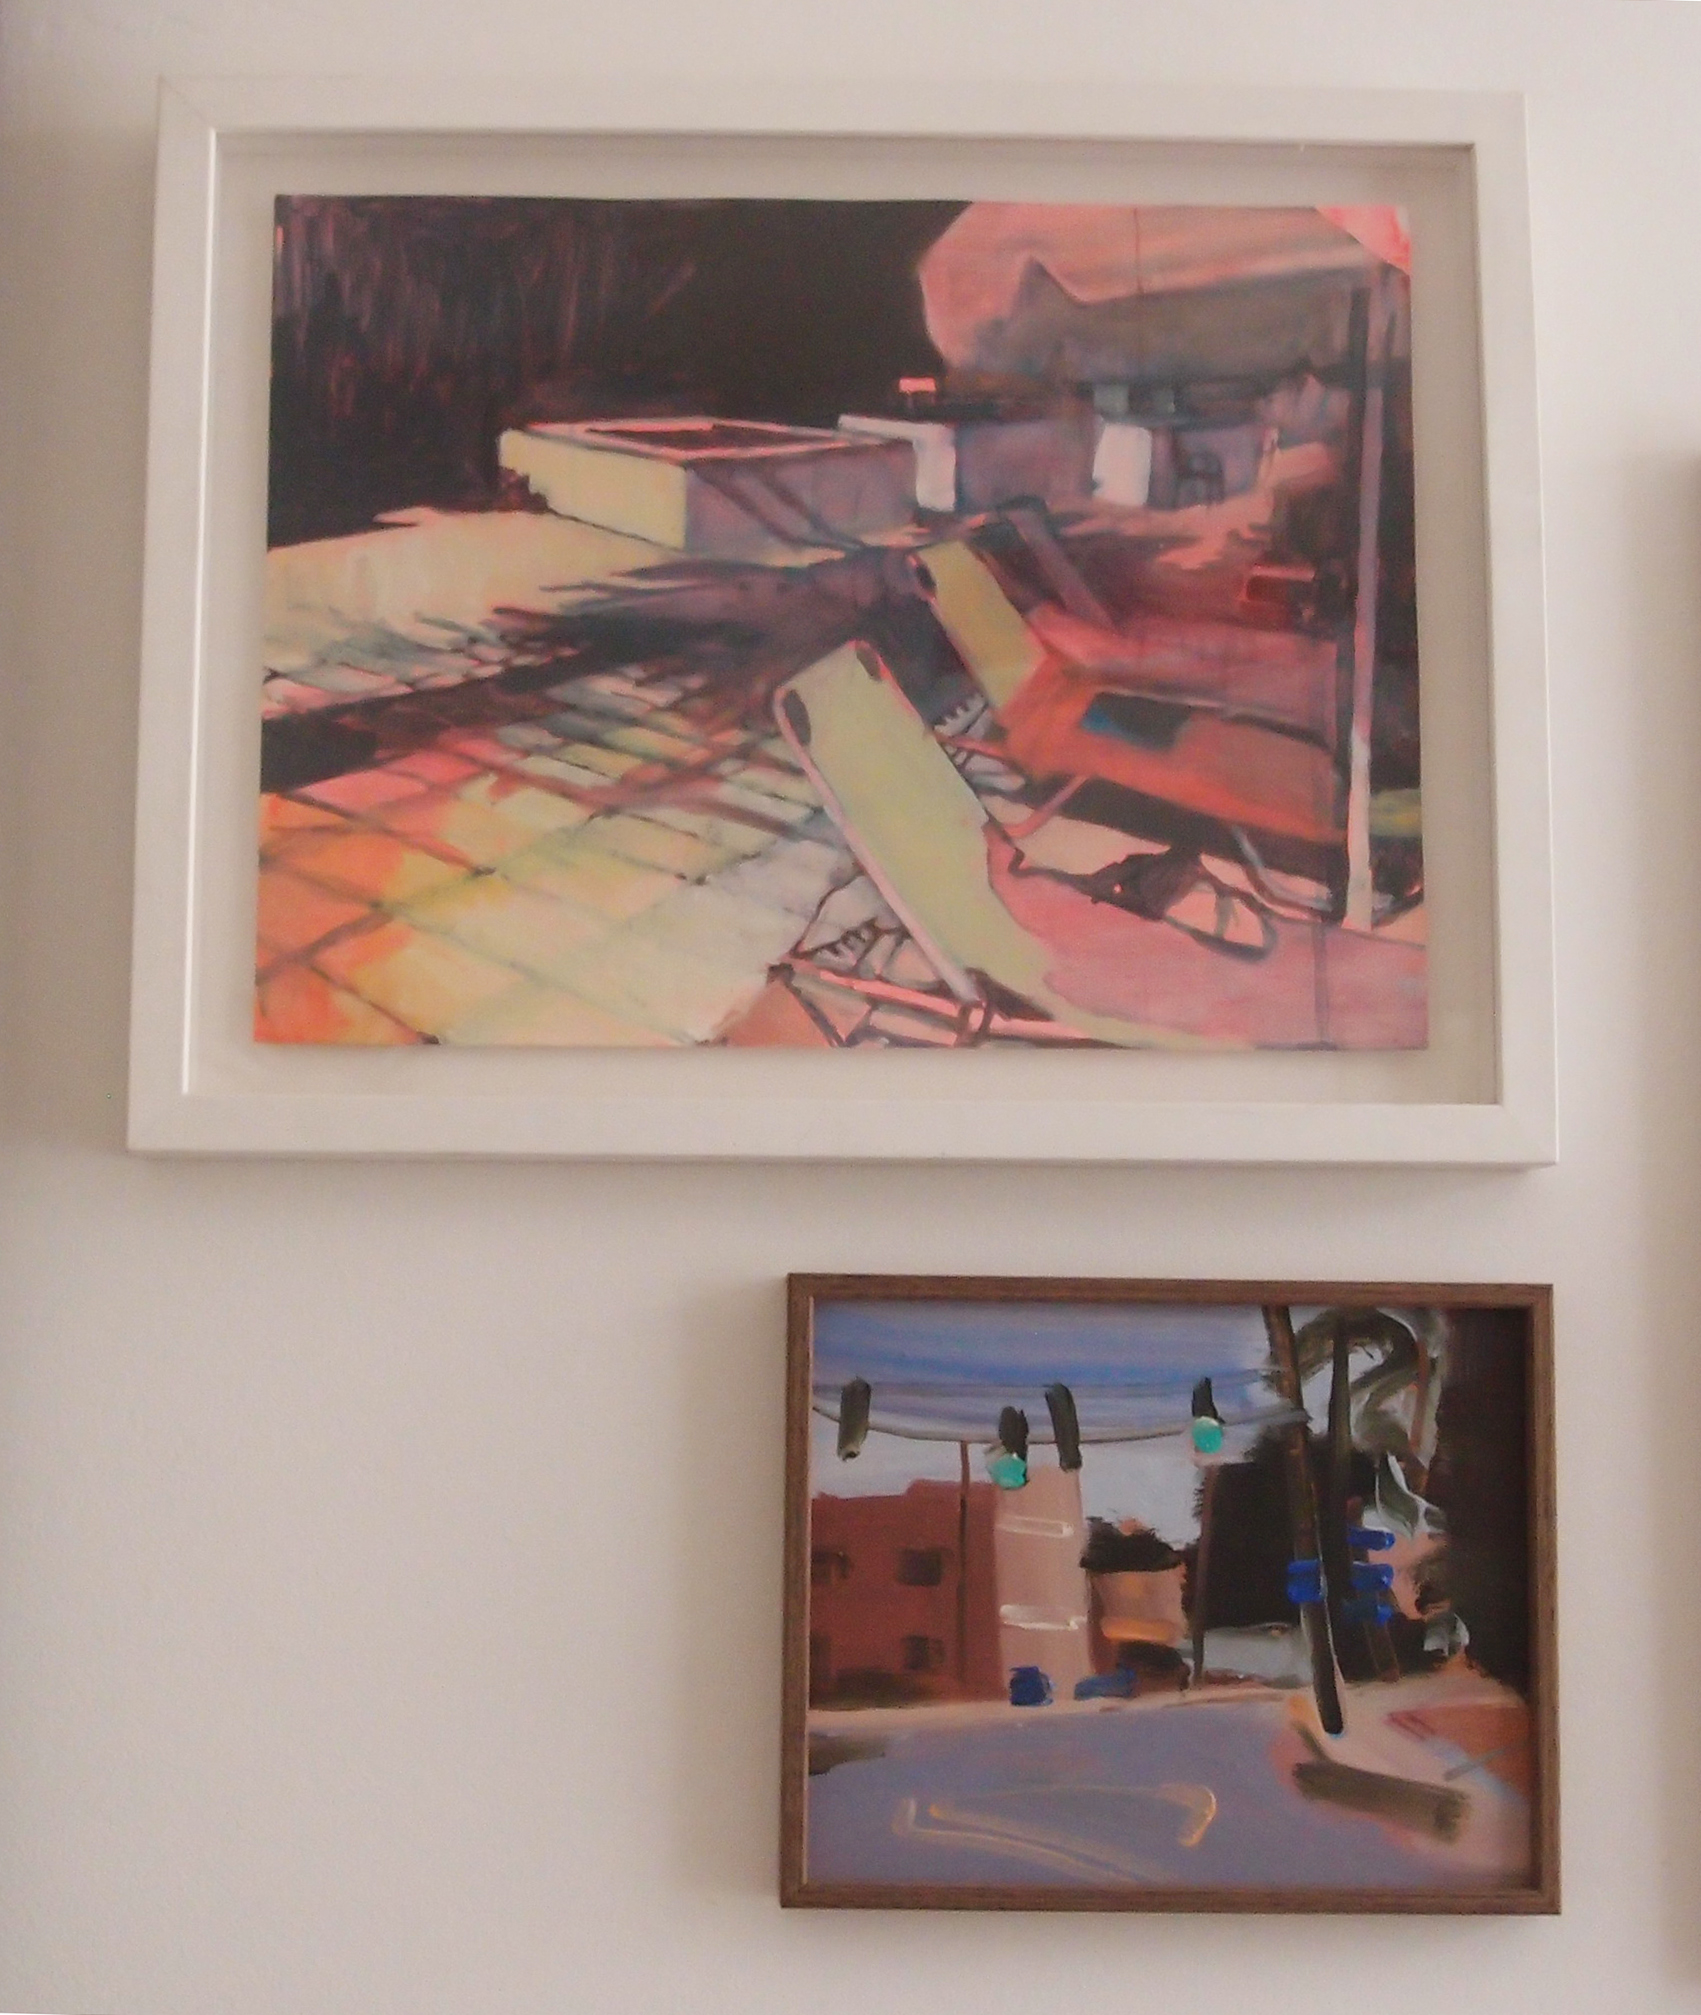 Sarah Barrett's collection, featuring artwork by Lucinda Metcalfe